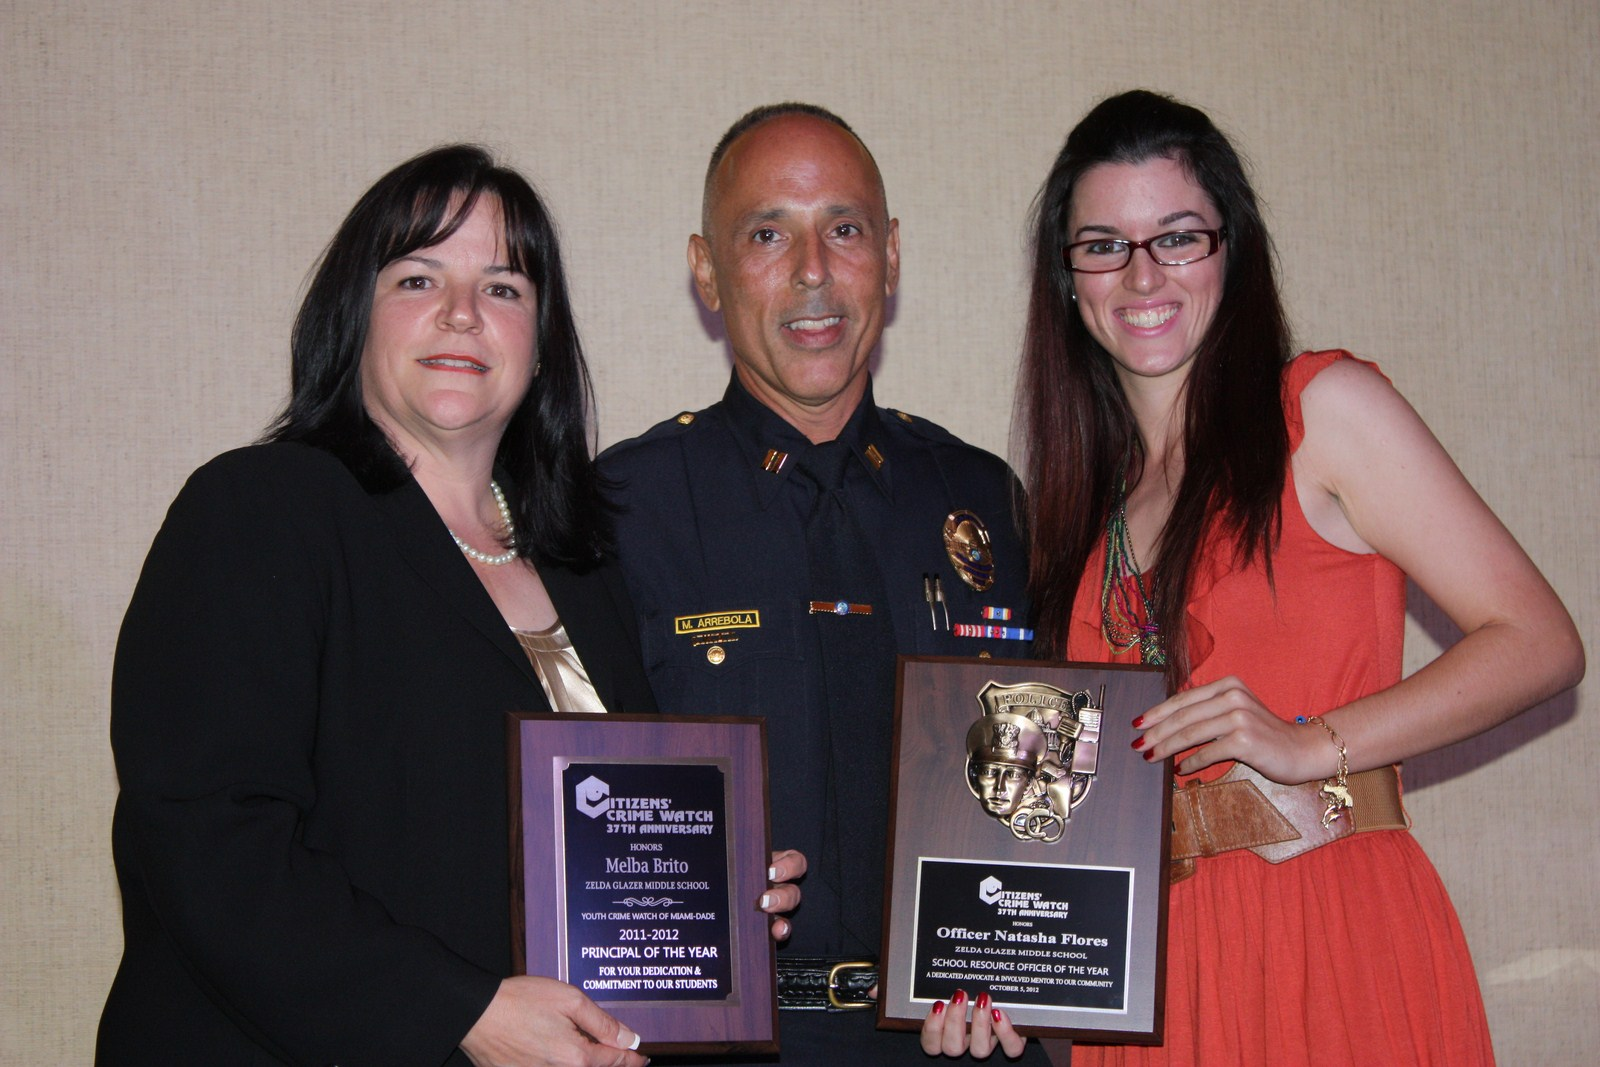 Youth Crime Watch 37th Annual Awards Ceremony